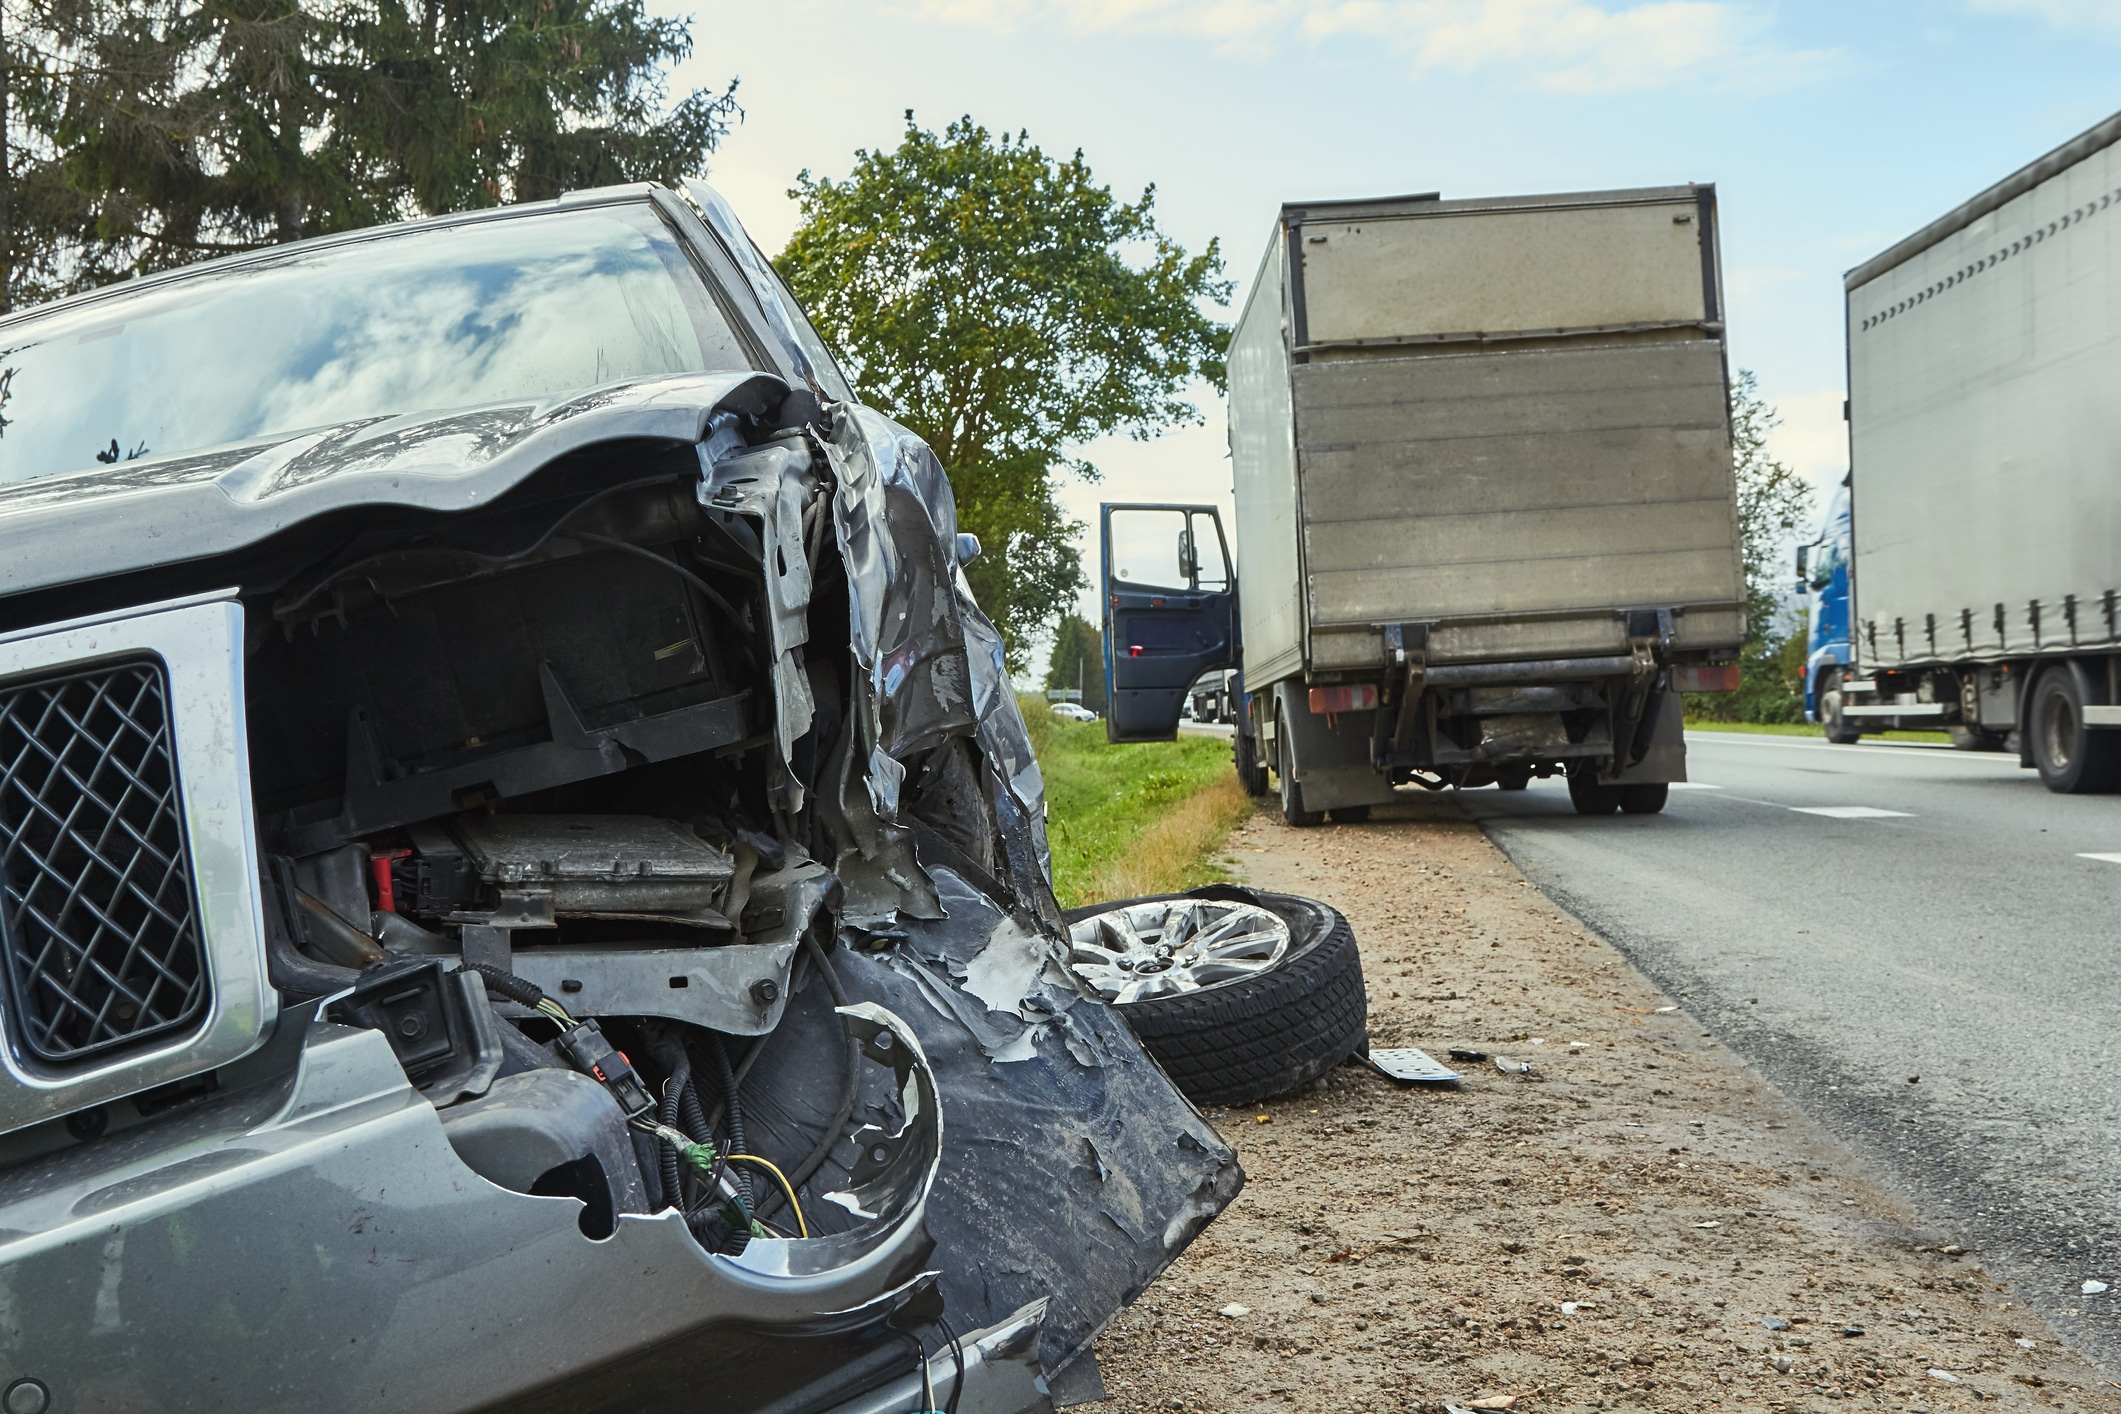 Car damaged after trucking accident involving two commercial trucks